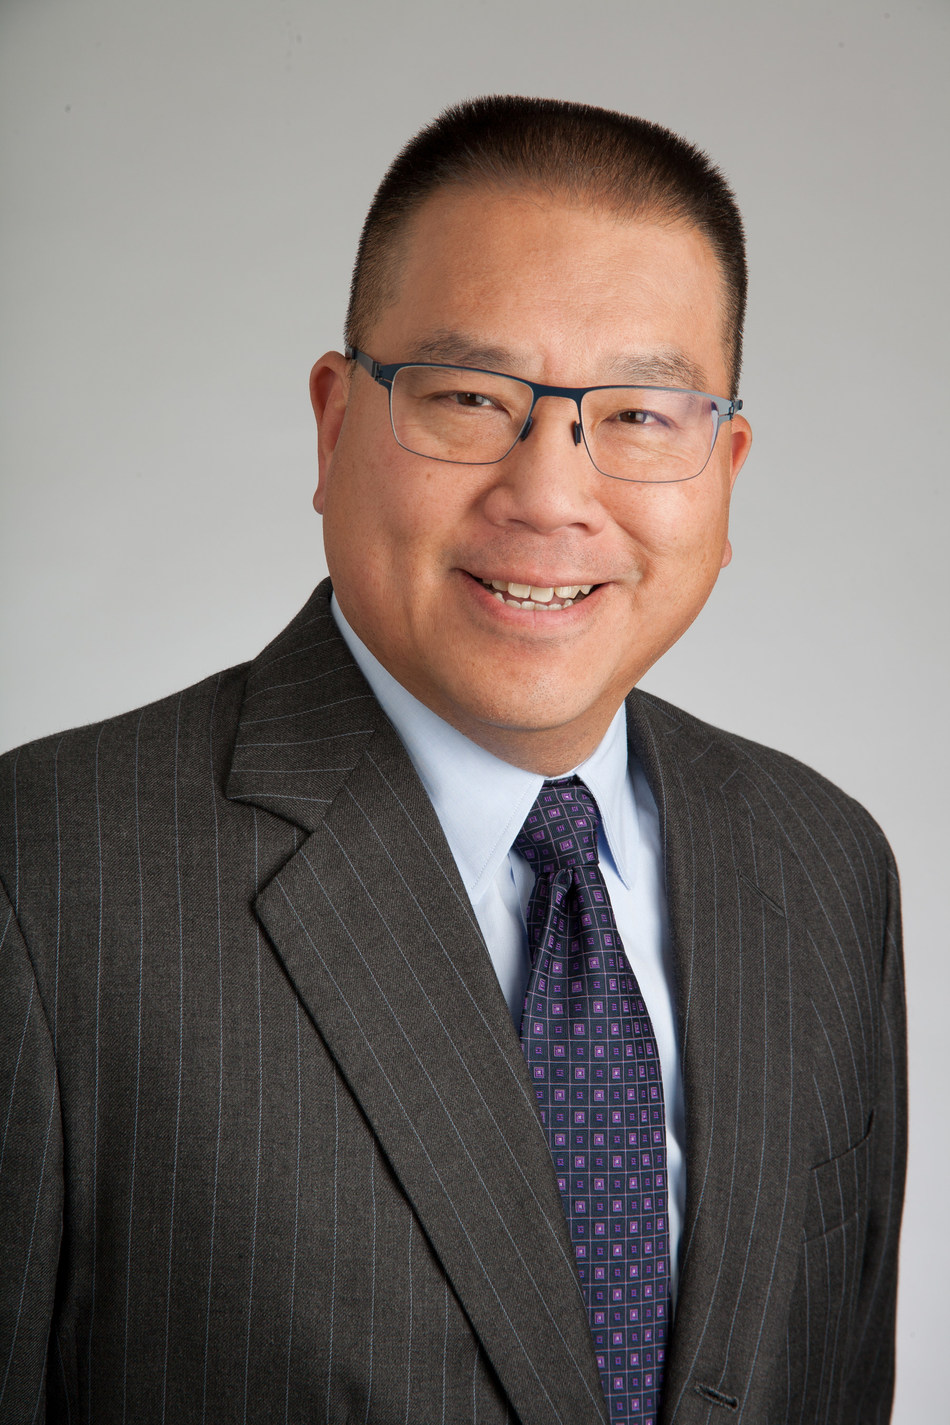 Kimberly-Clark Corporation announced that its Board of Directors has named Michael D. Hsu, 54, Chief Executive Officer, effective January 1, 2019.